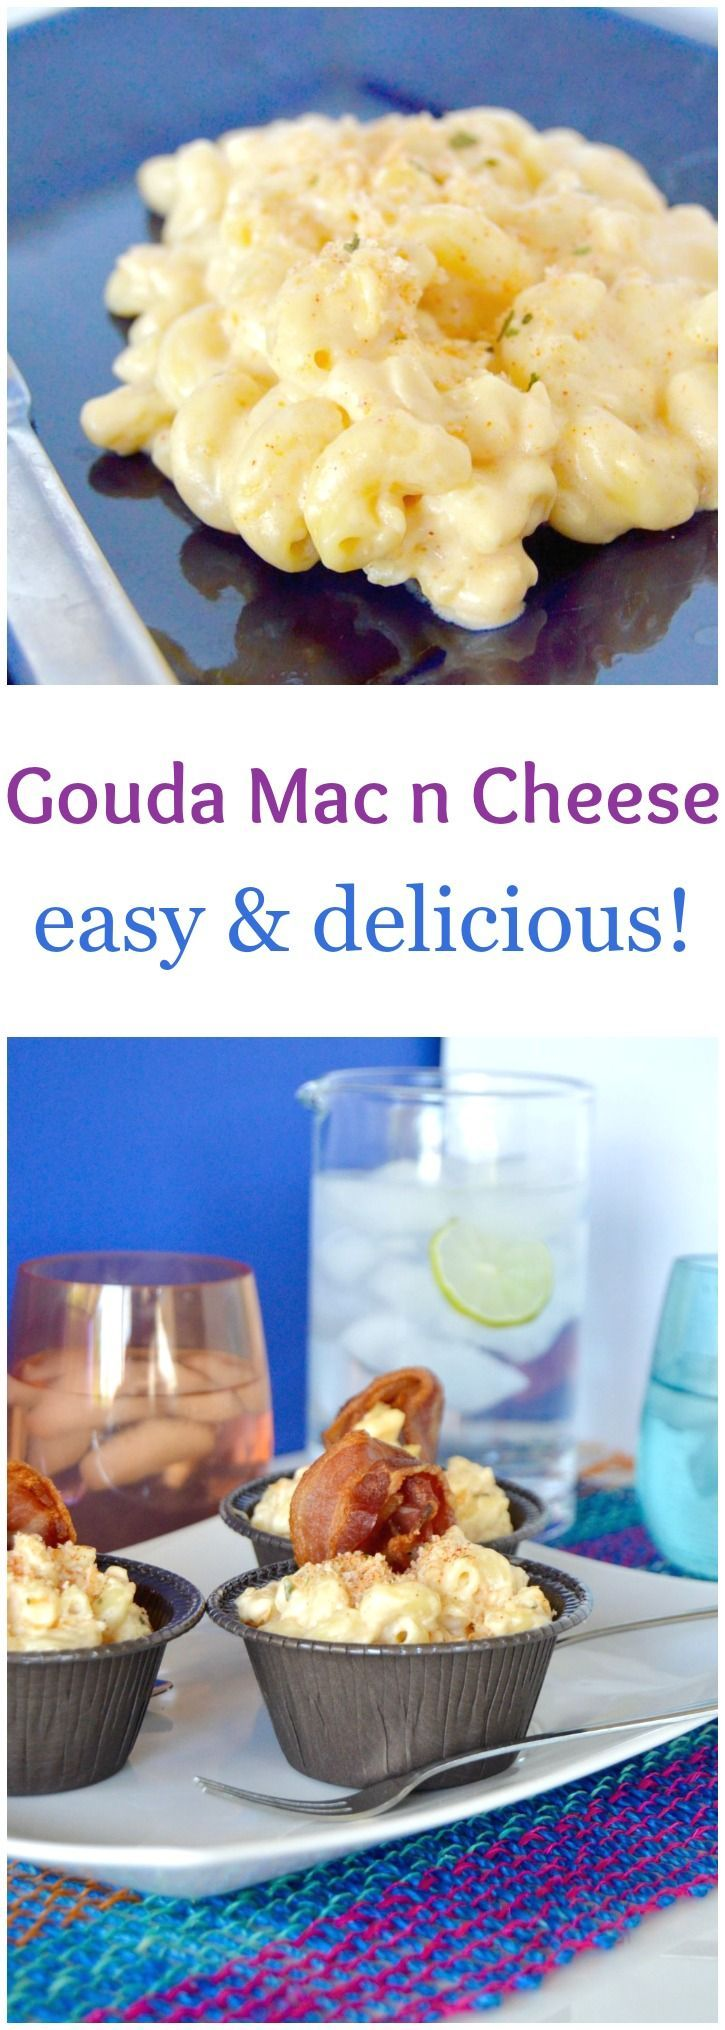 """This Gouda mac n Cheese actually has 2 kinds of gouda and a surprise cheese too! The creamy, smokiness of the gouda combined with the more """"tart"""" goat cheese will become a family favorite! (the fact that it takes less than 20 minutes to make is a bonus too!)"""